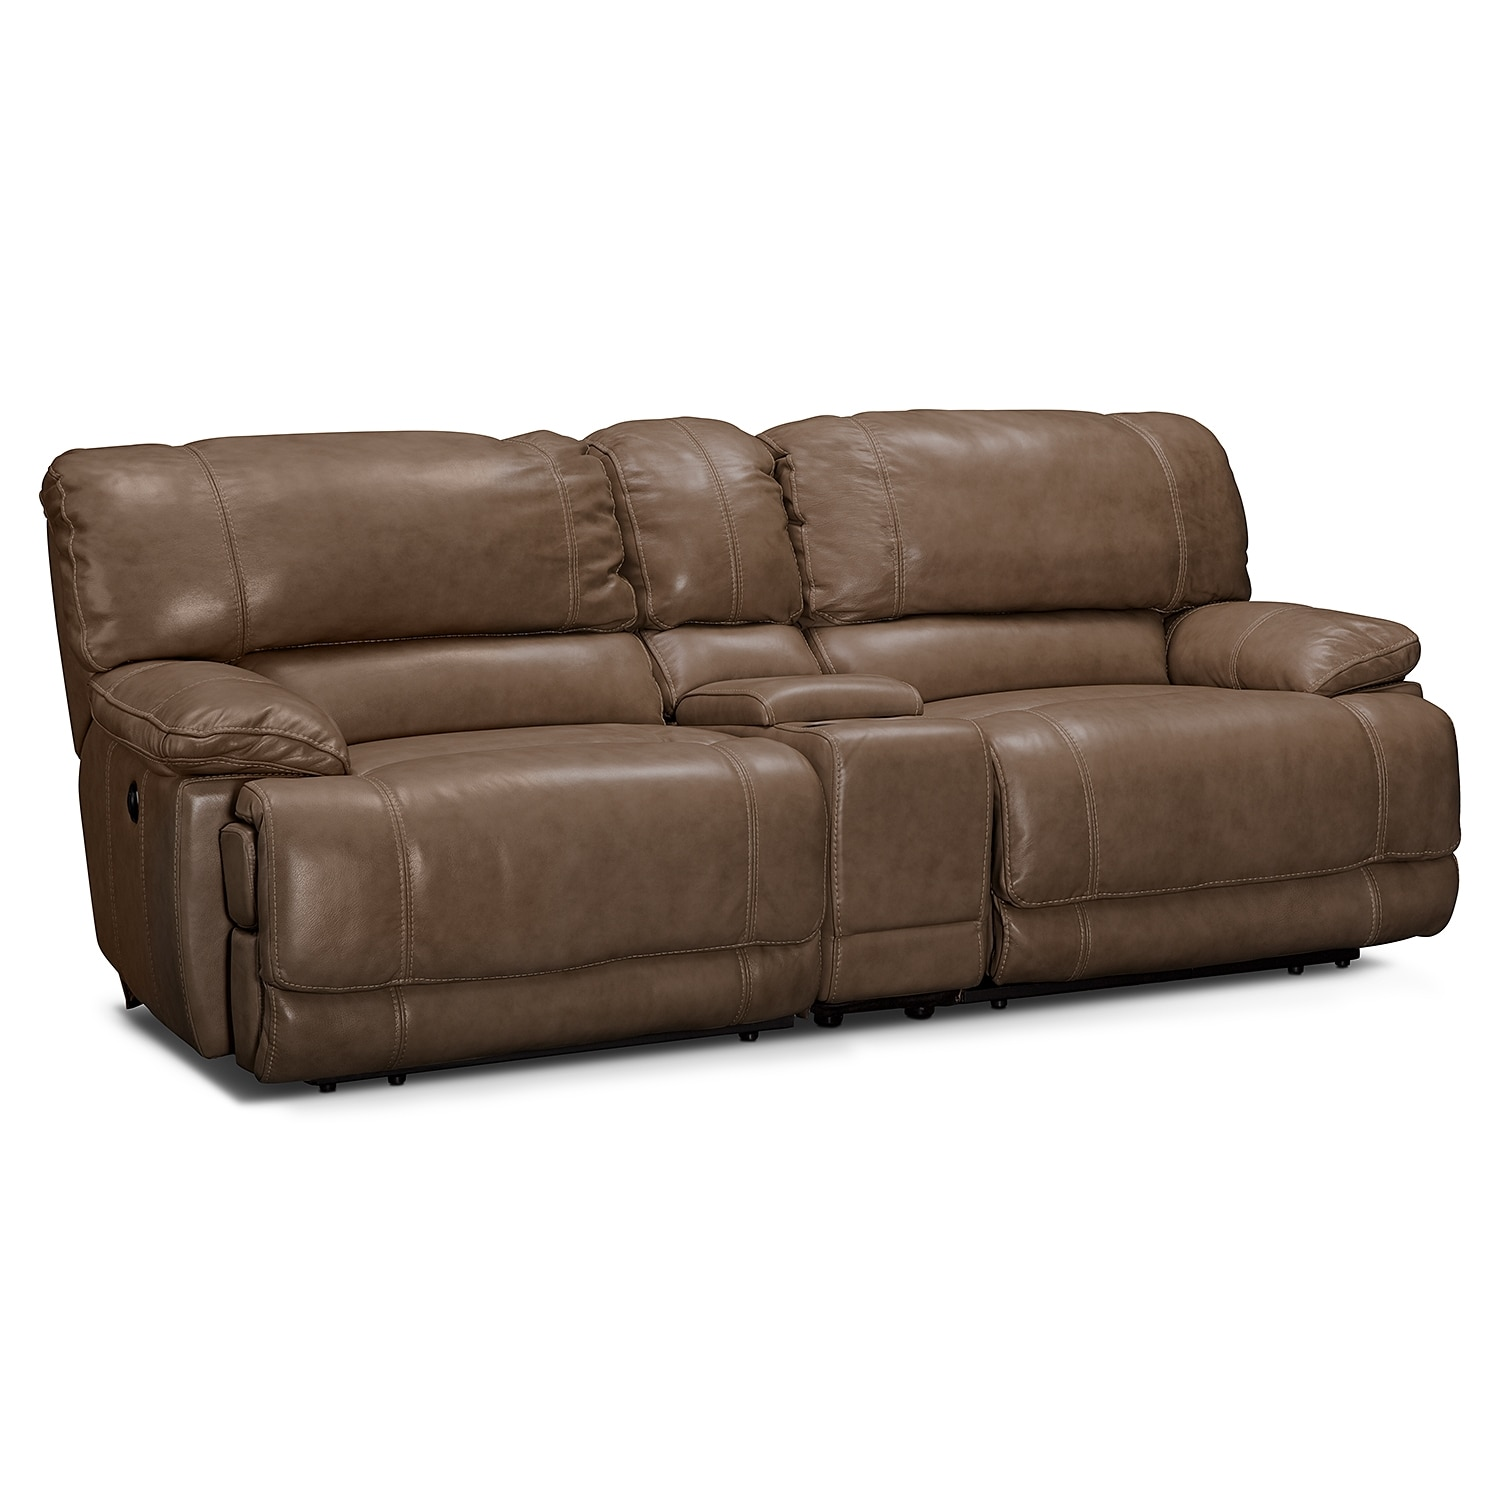 St. Malo II 3 Pc. Power Reclining Sofa with Console